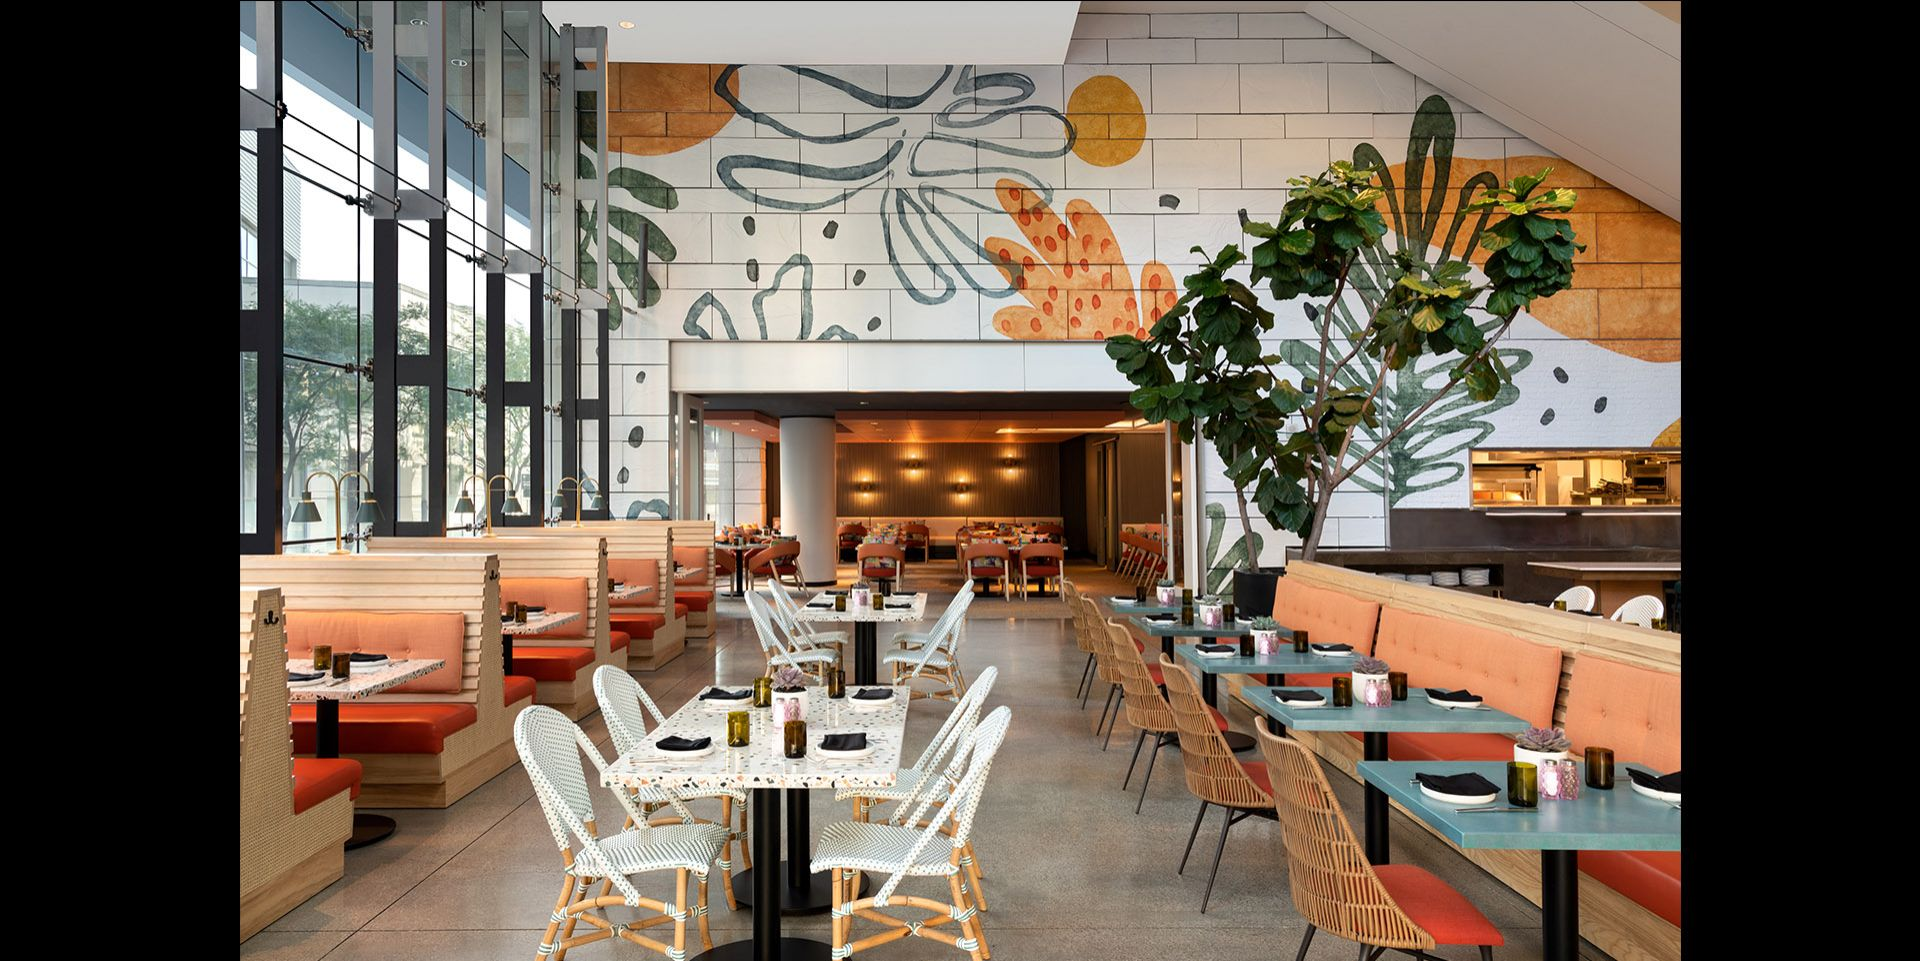 Boho Chic and Modern Design Meet Coexist Beautifully in This Hospitality Project of HBA